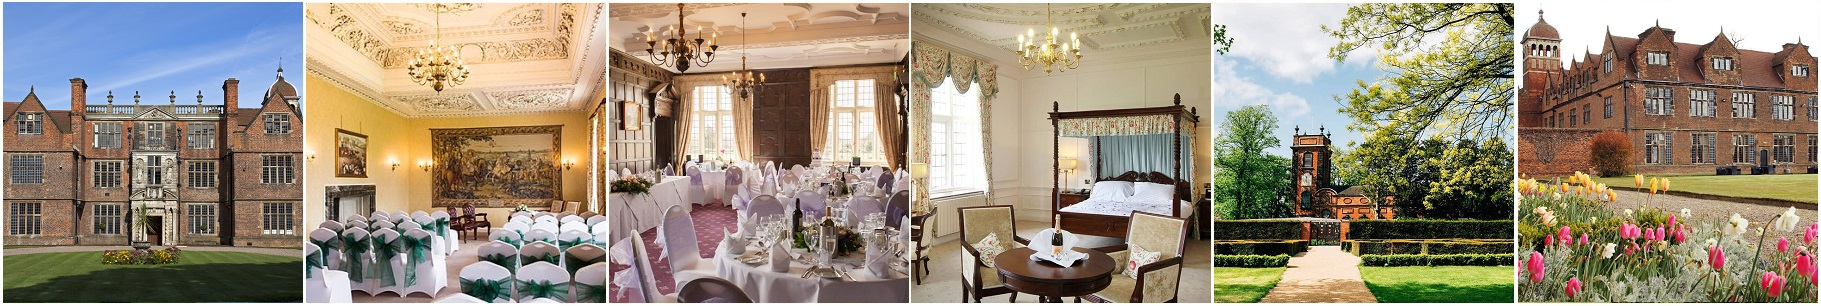 Castle Bromwich Hall Hotel- West Midlands Wedding Venues